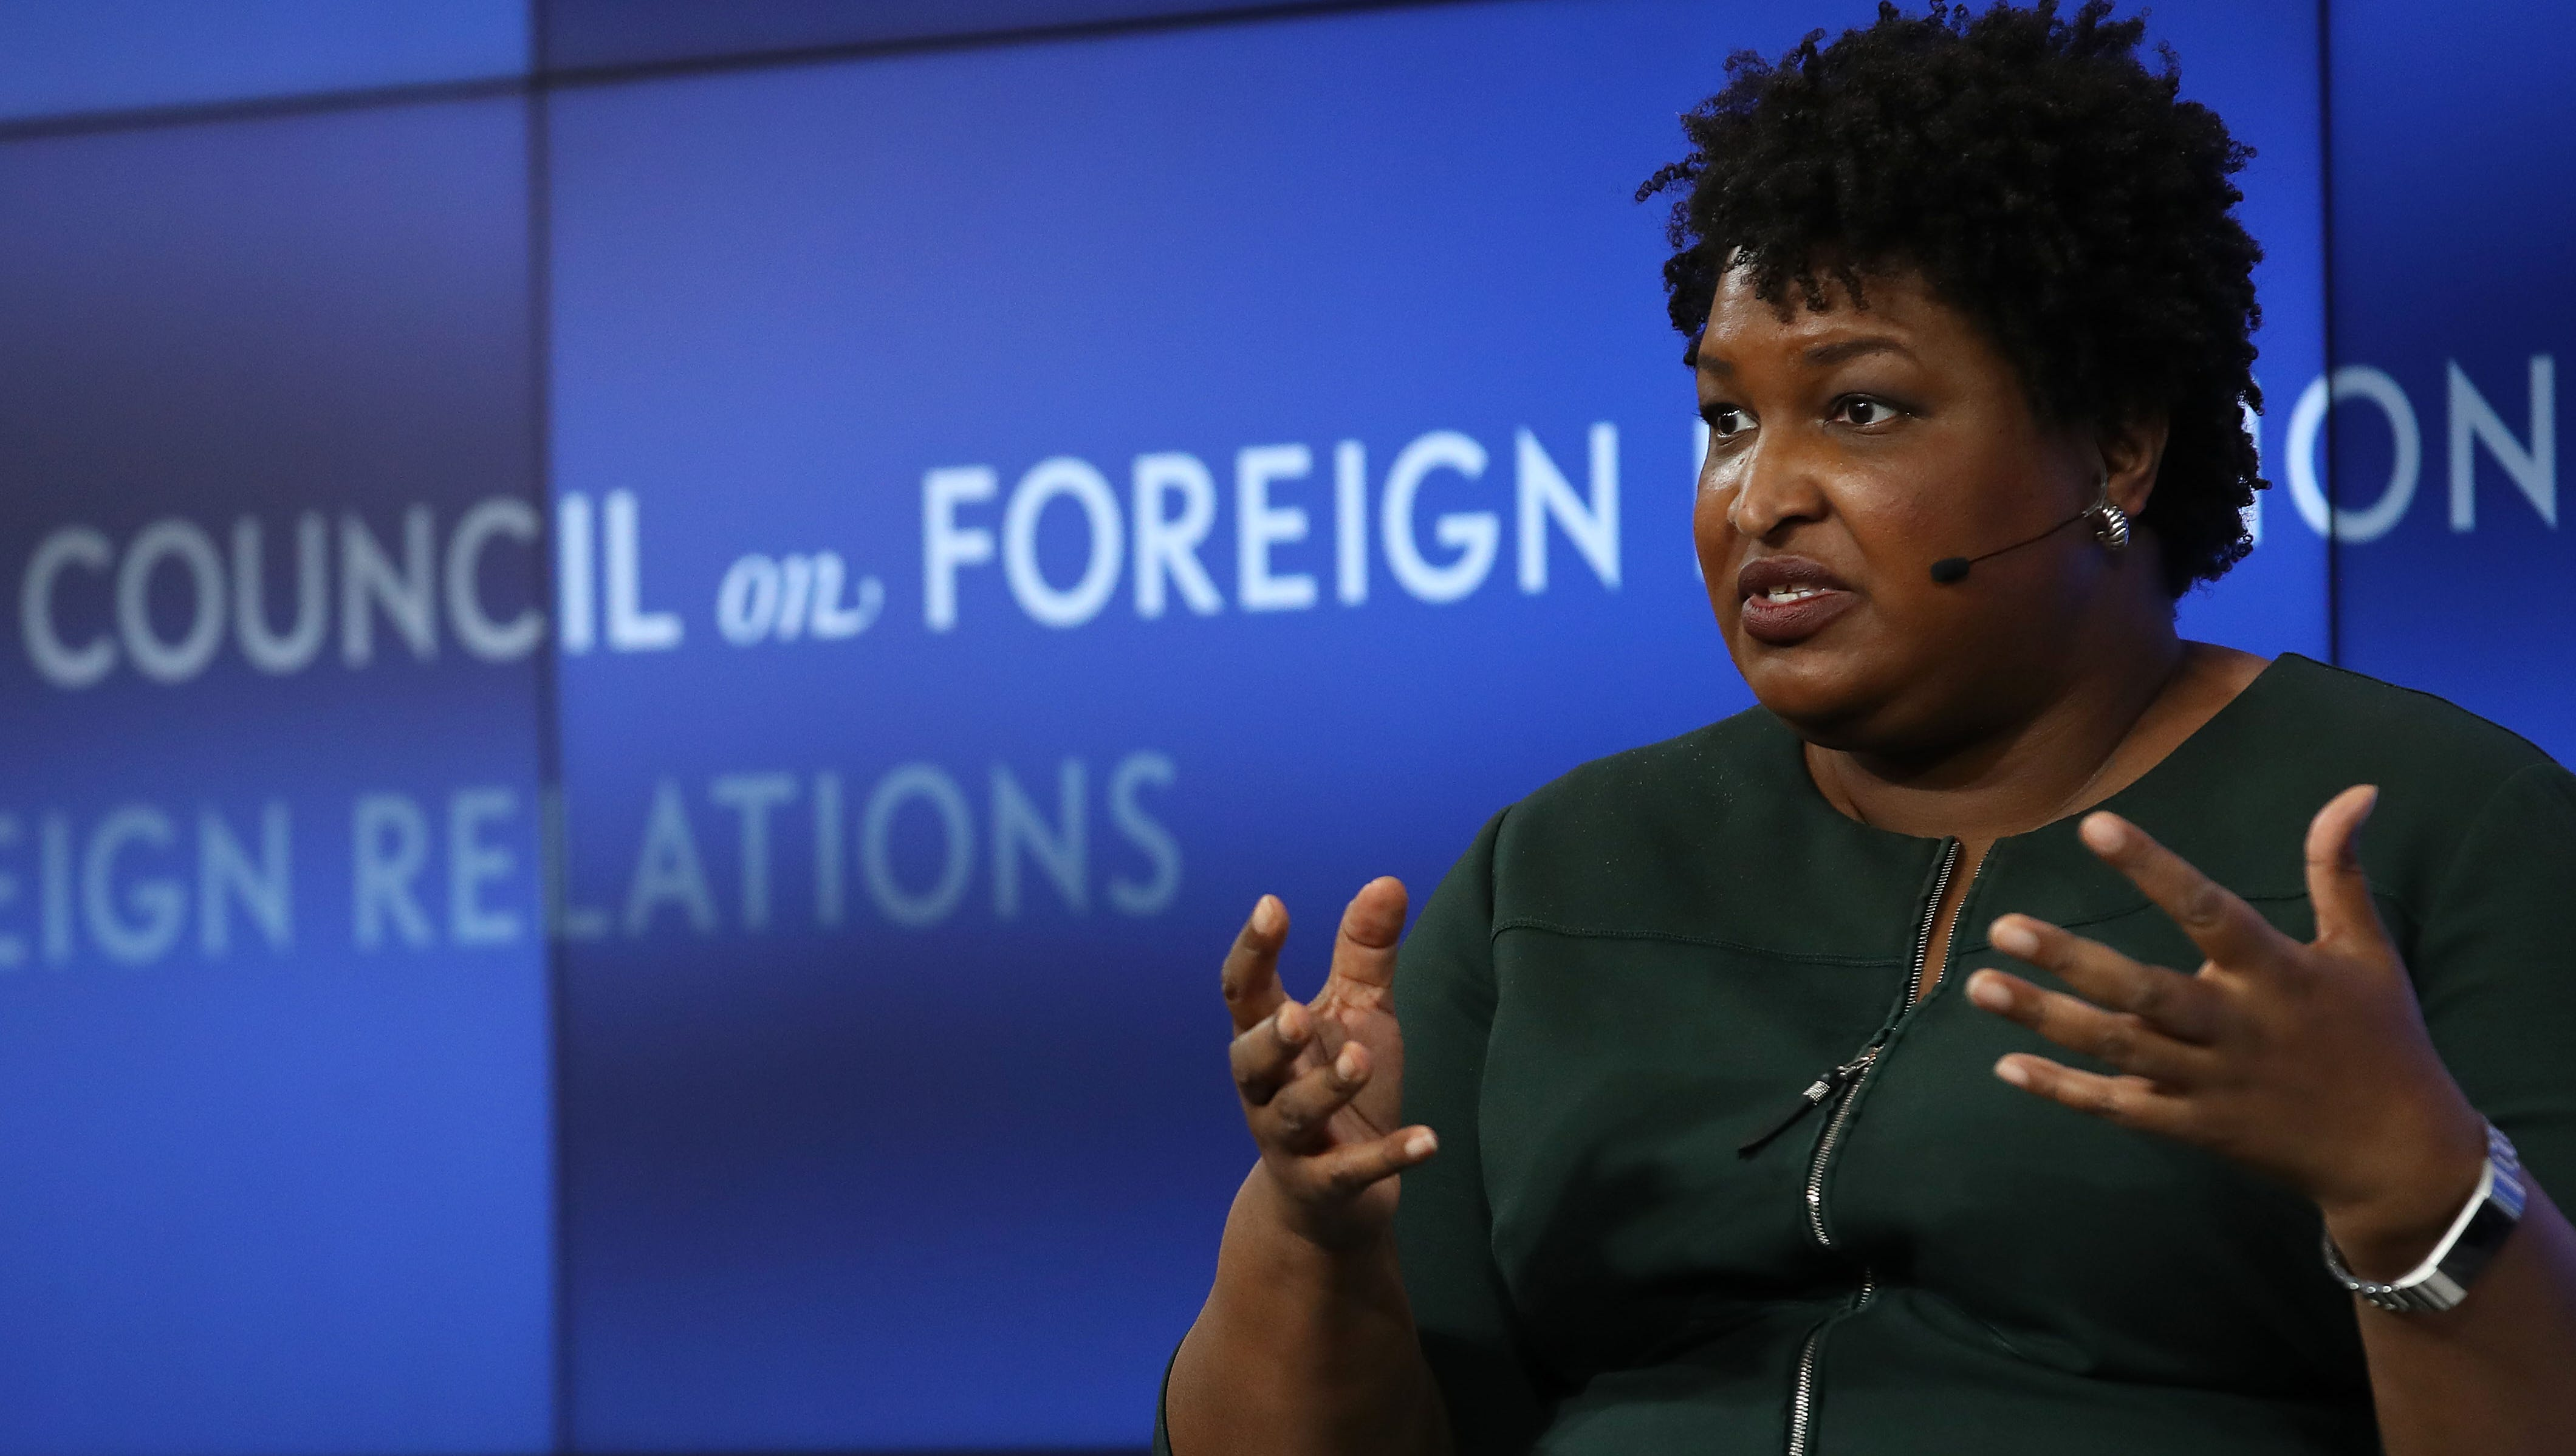 Former Georgia Democratic gubernatorial nominee Stacey Abrams speaks at the Council on Foreign Relations May 10, 2019 in Washington, DC. Abrams appeared as part of the 2019 Conference on Diversity in International Affairs. (Photo by Win McNamee/Getty Images)